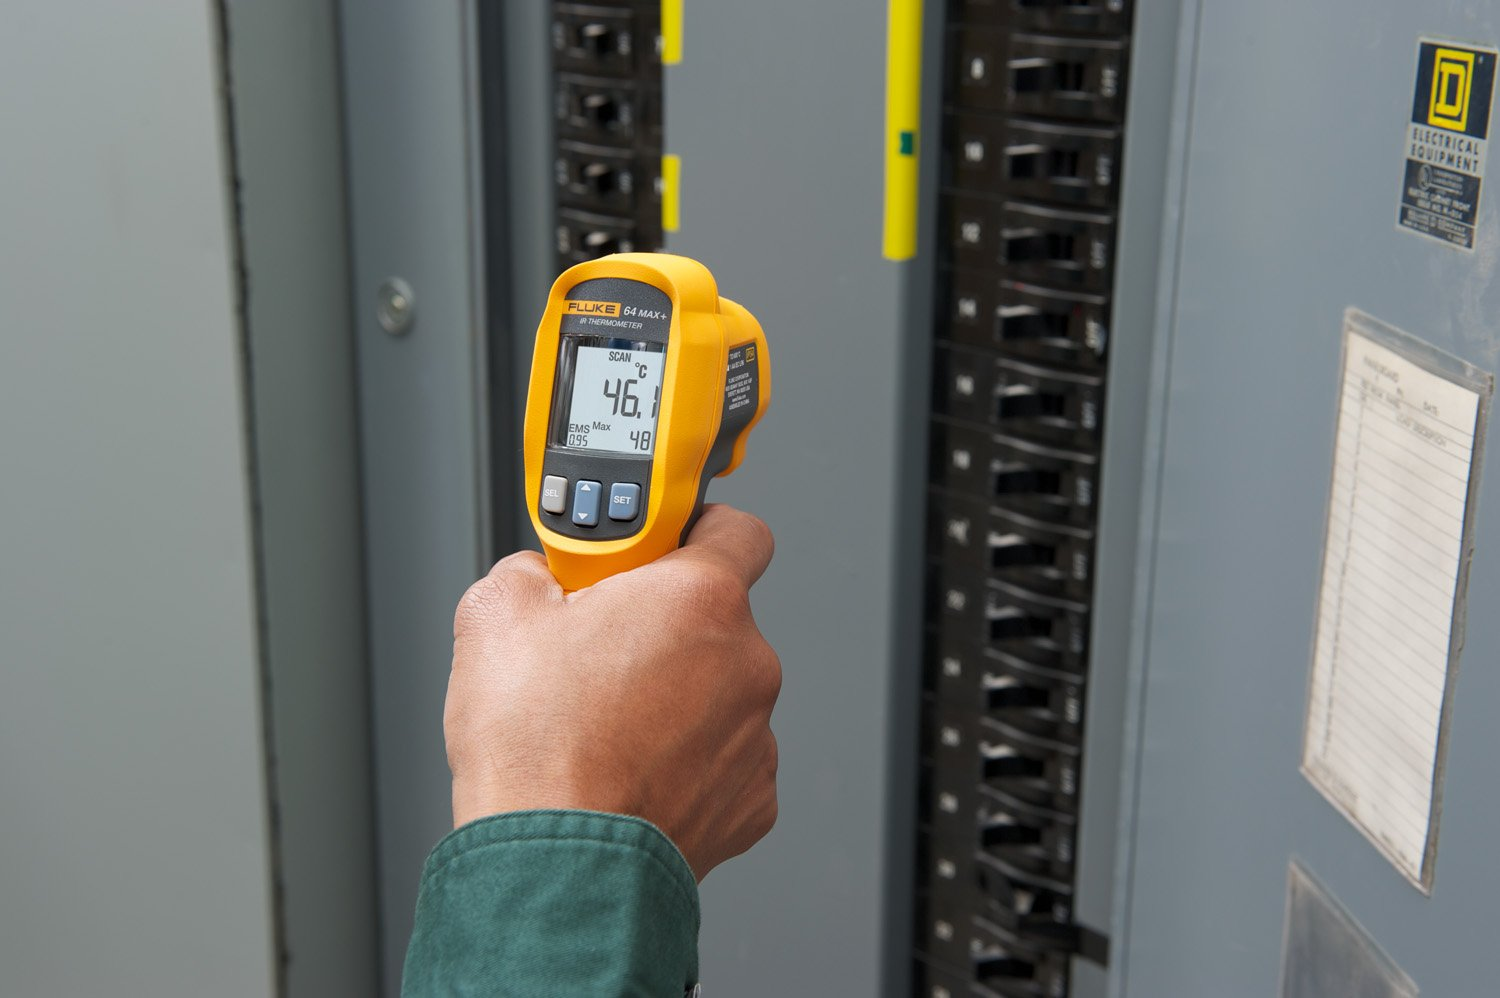 Fluke 64 Max Infrared Thermometer, Multi-Functional, -22 to 1112 °F Range: Amazon.com: Industrial & Scientific